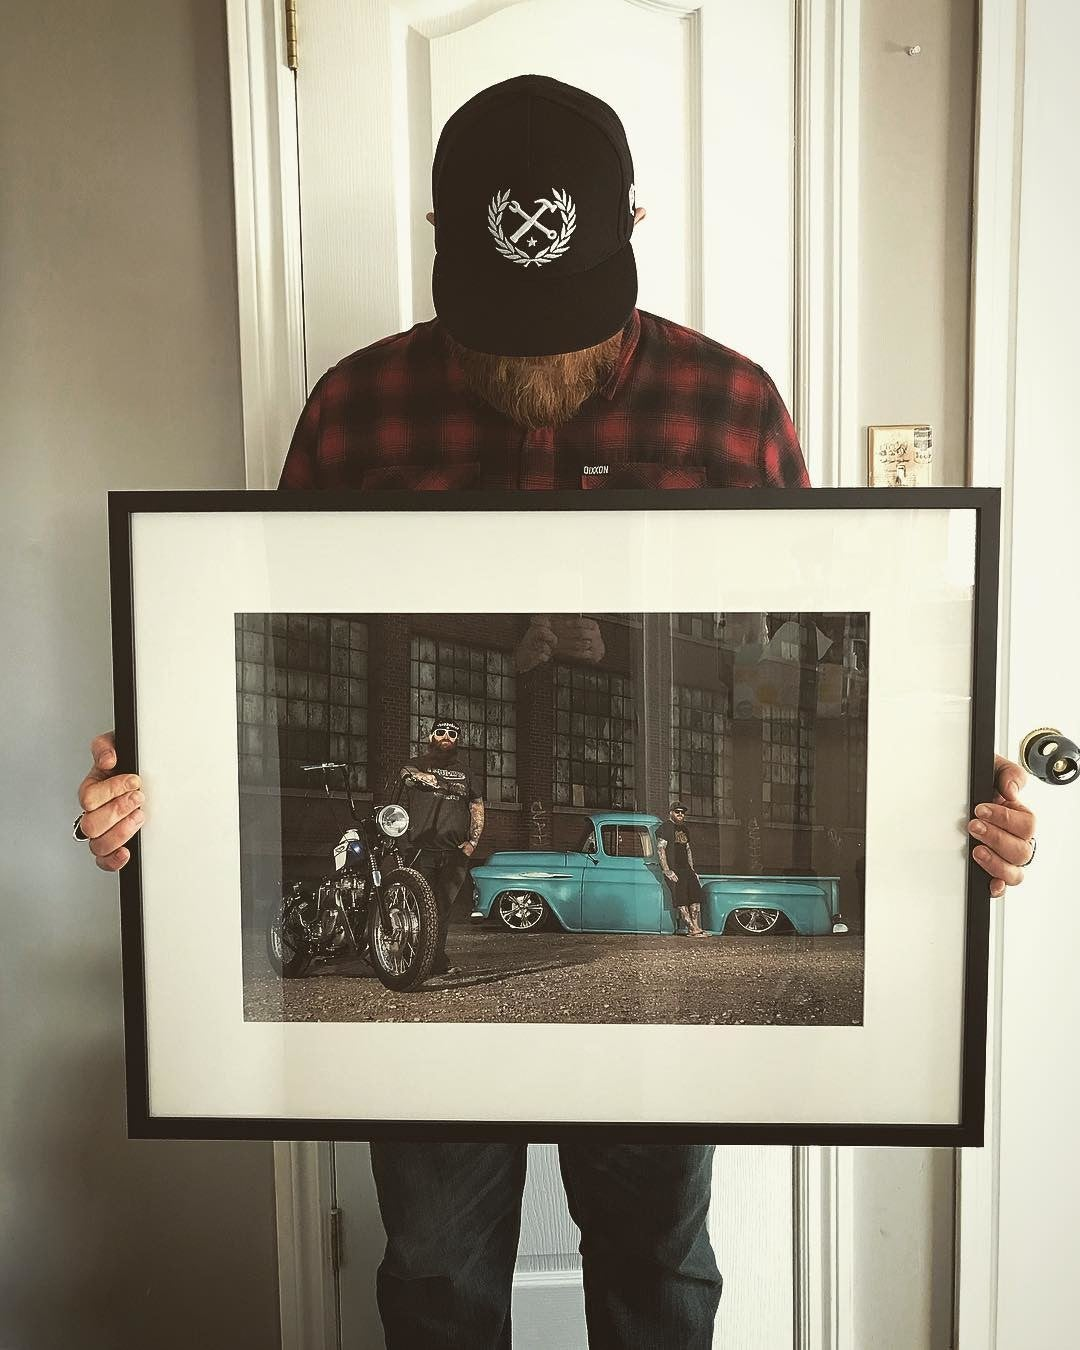 Posterjack Framed Print - Photo with Customer